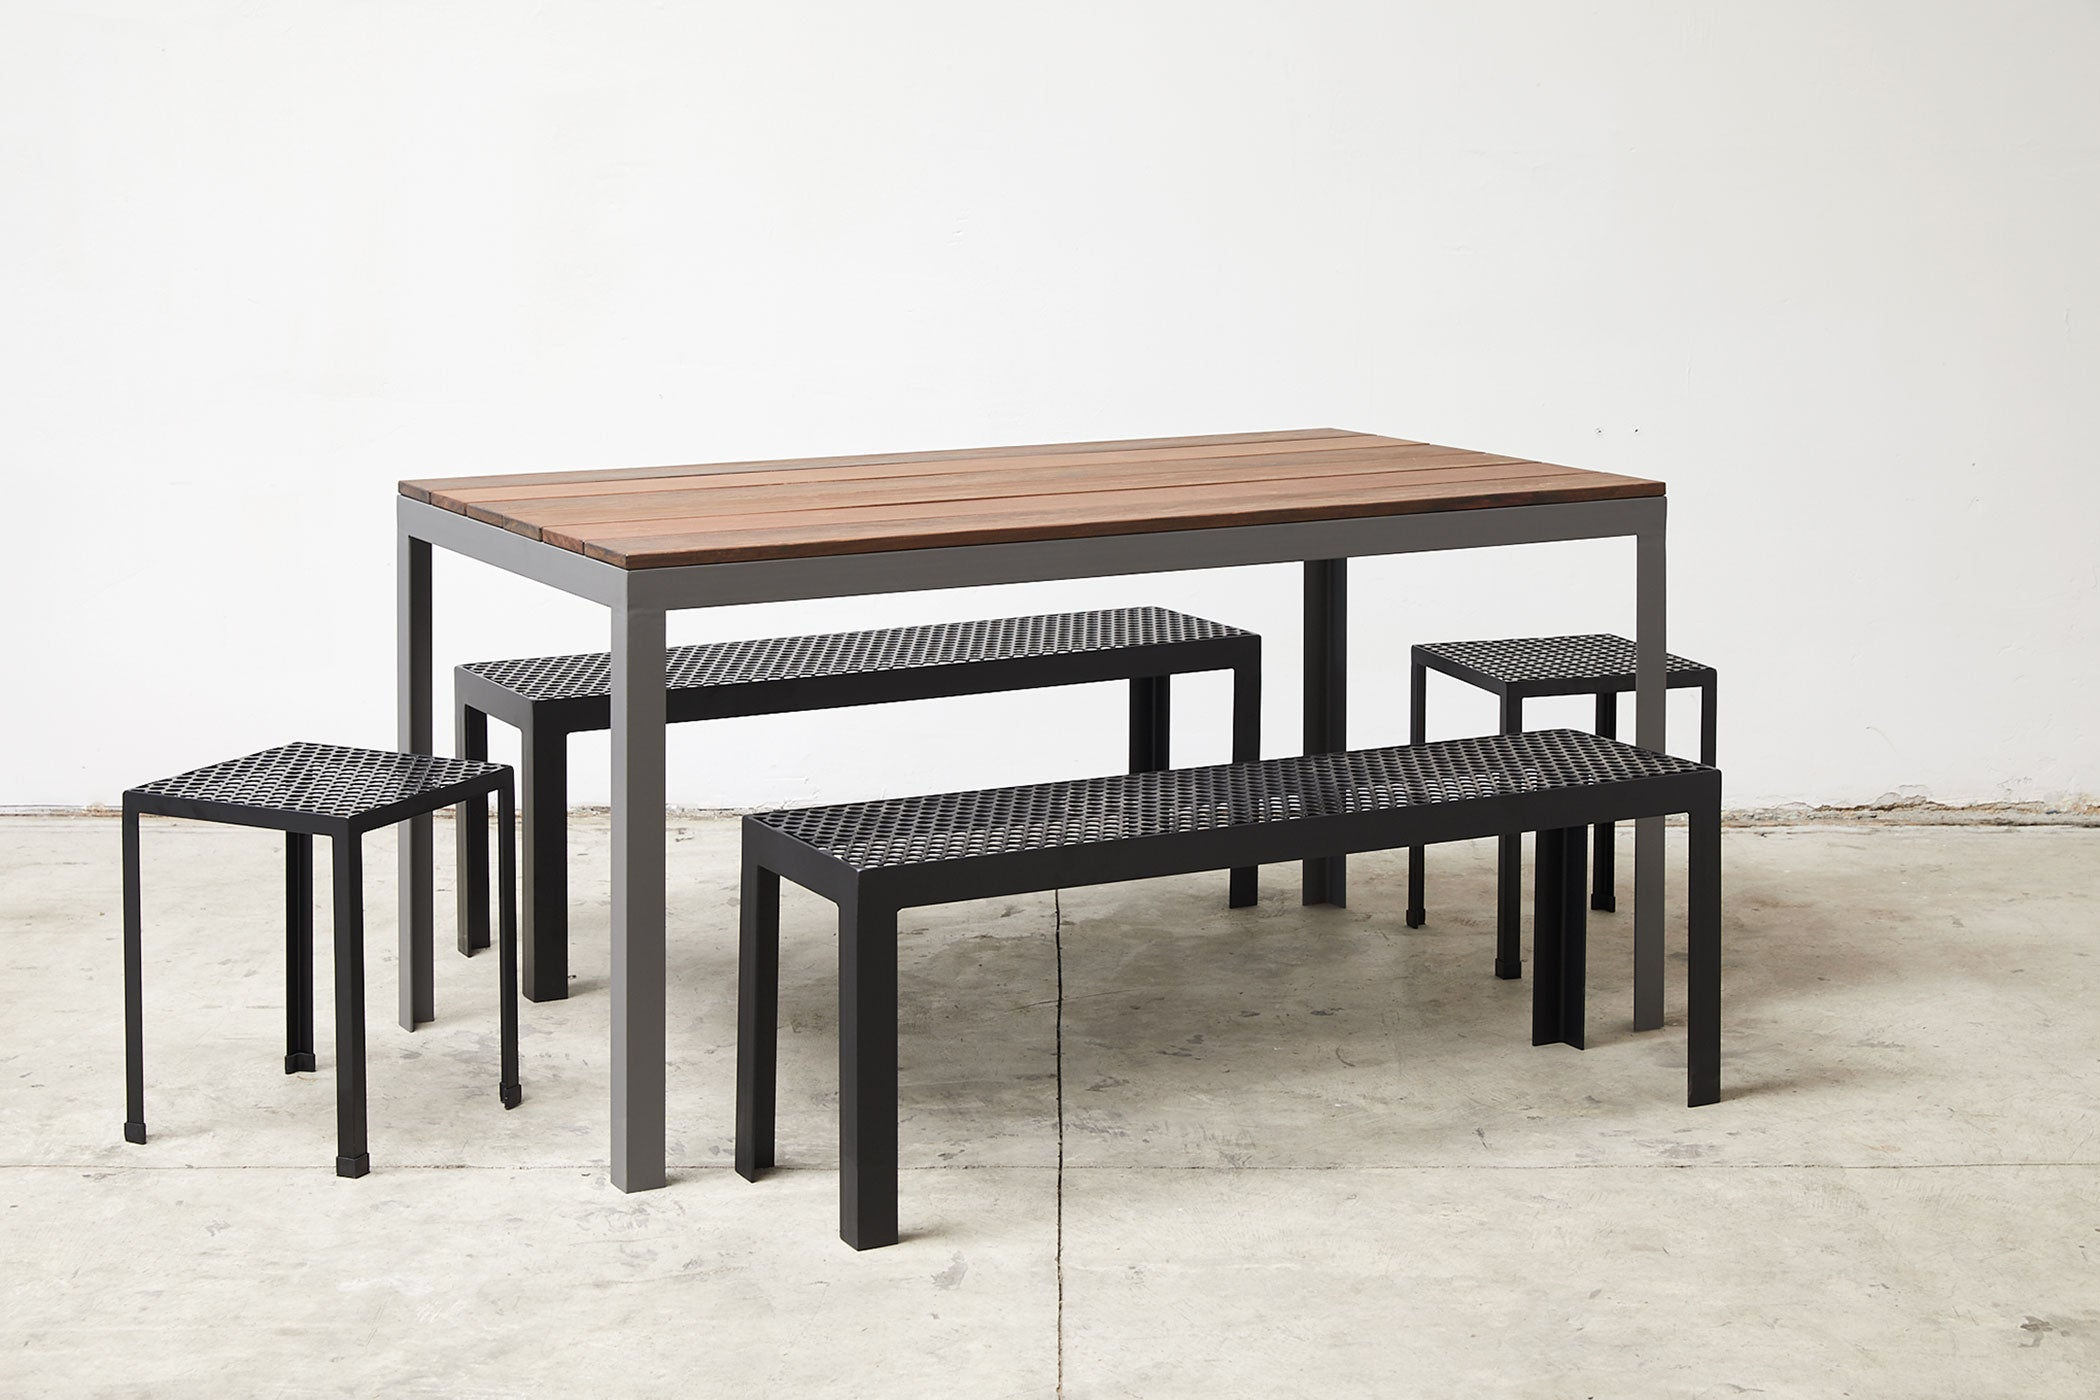 RAD Furniture's Perforated Benches, Perforated Knockaround Stools, and Slatted Wood-top Dining Table